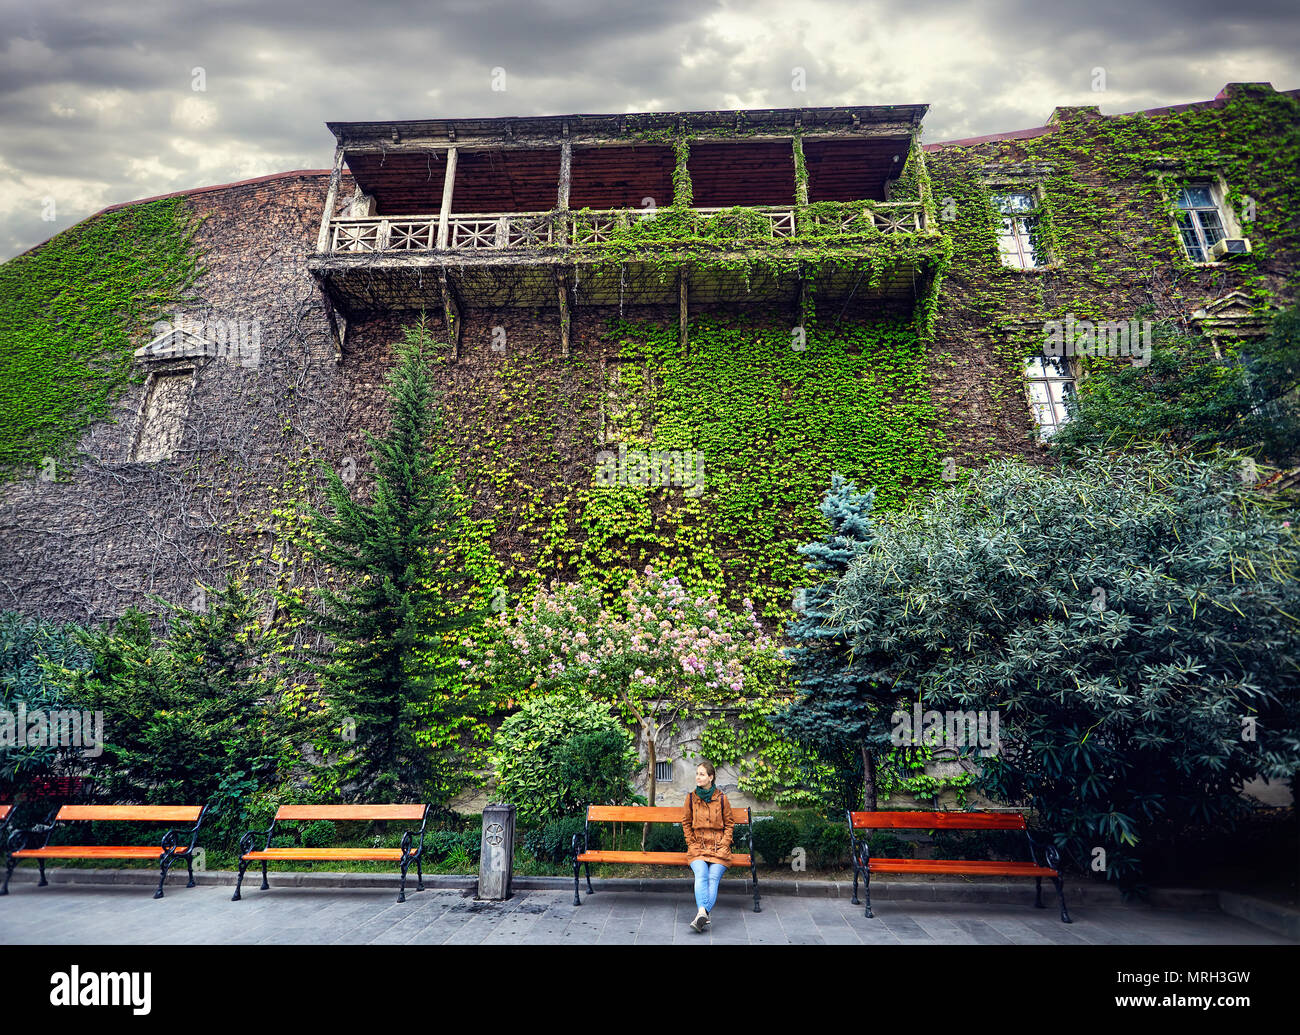 Tourist woman on the branch near old building in central Tbilisi, Georgia - Stock Image